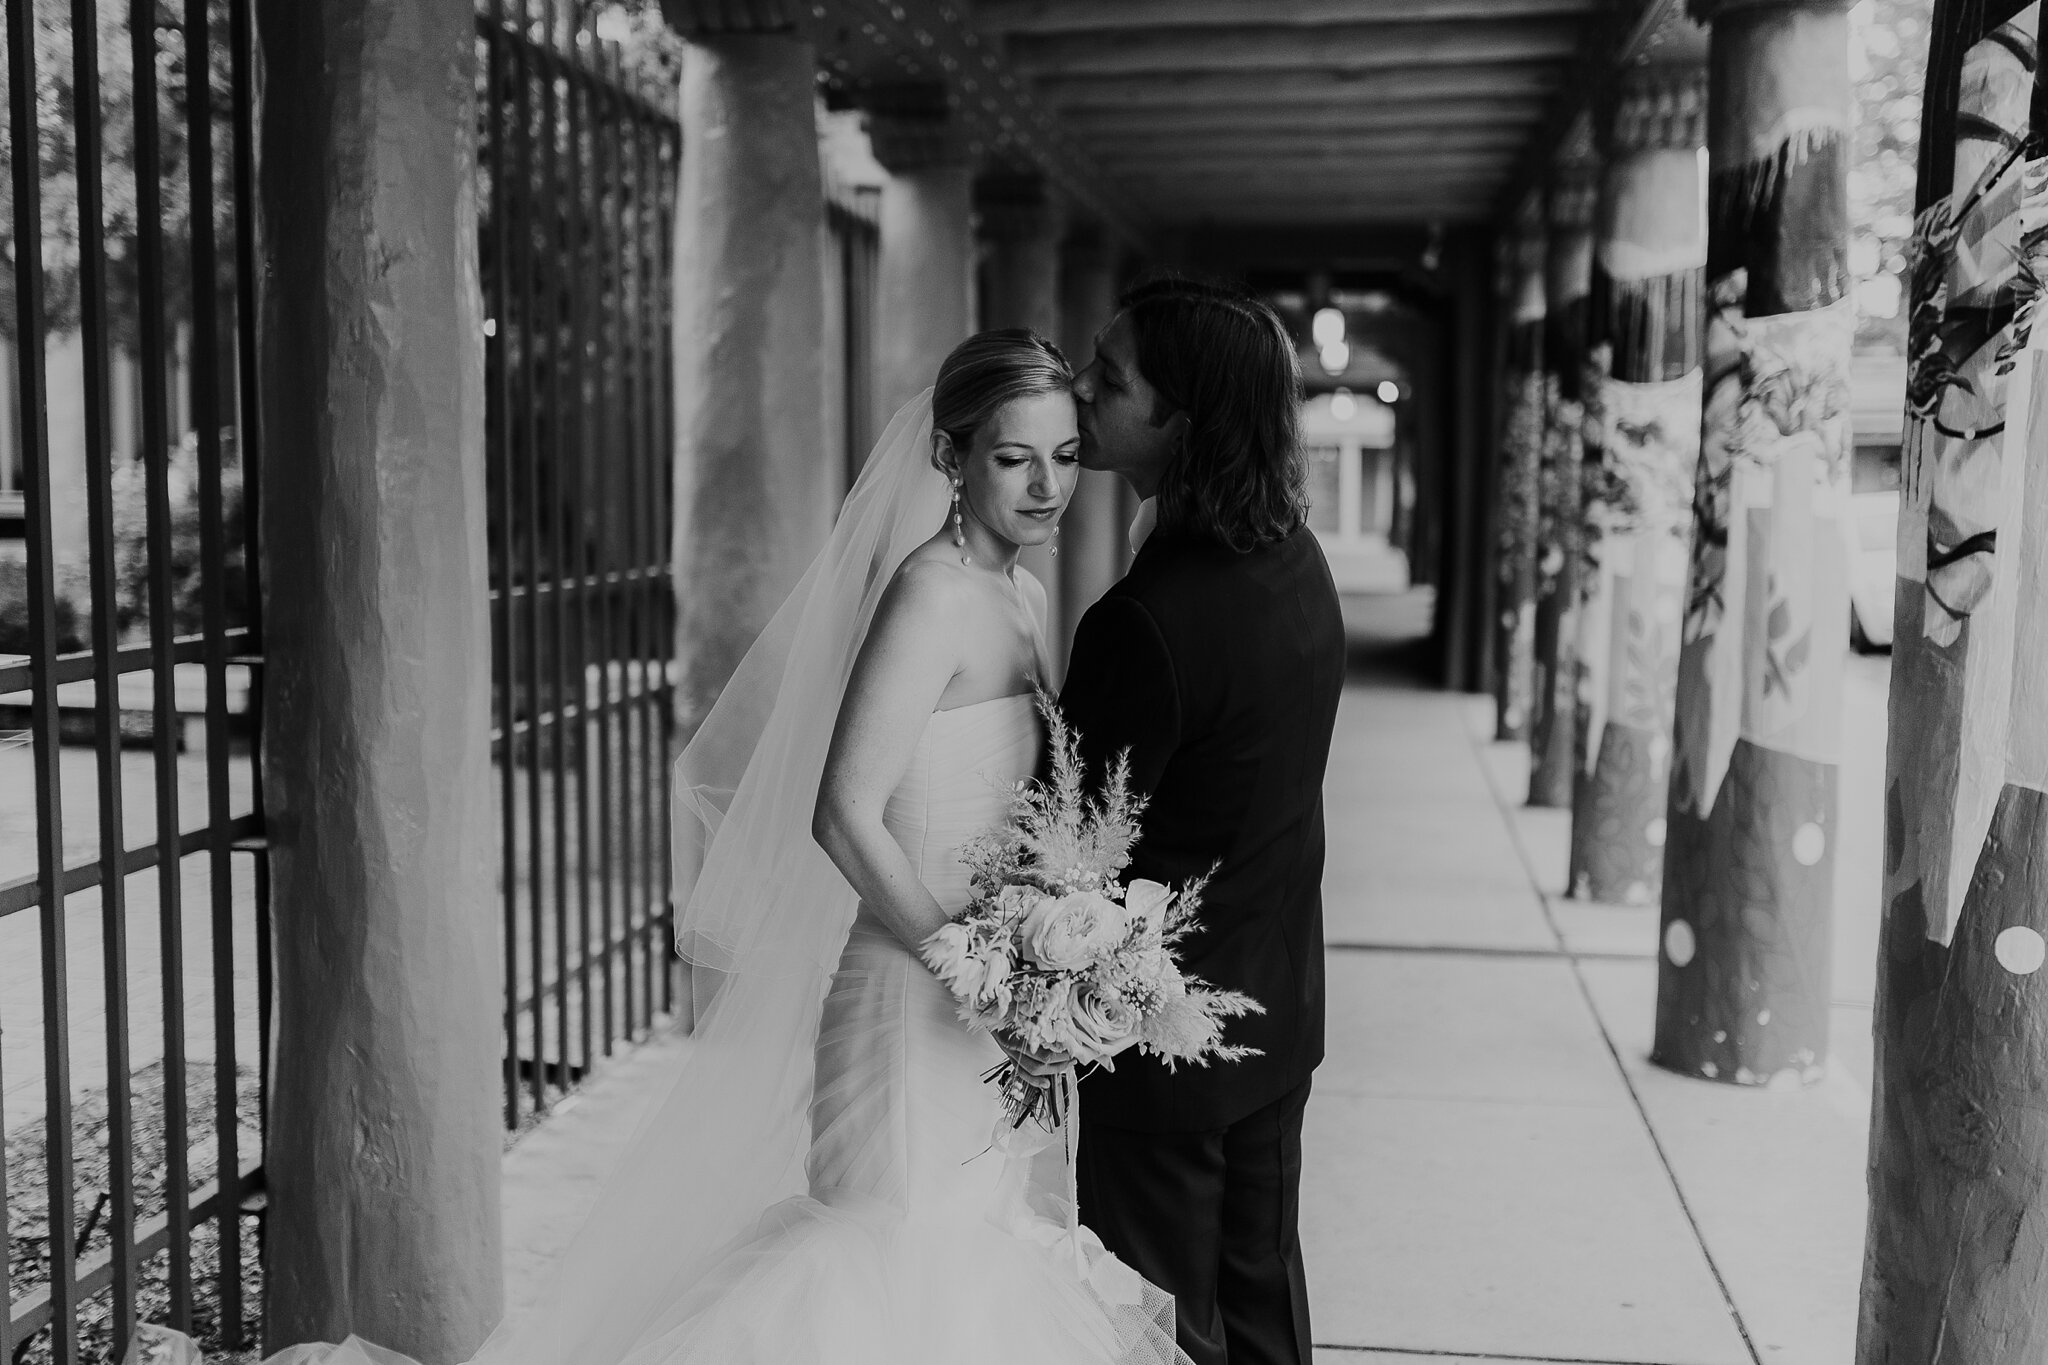 Alicia+lucia+photography+-+albuquerque+wedding+photographer+-+santa+fe+wedding+photography+-+new+mexico+wedding+photographer+-+new+mexico+wedding+-+la+fonda+wedding+-+la+fonda+on+the+plaza+-+santa+fe+wedding+-+brooklyn+bride_0086.jpg